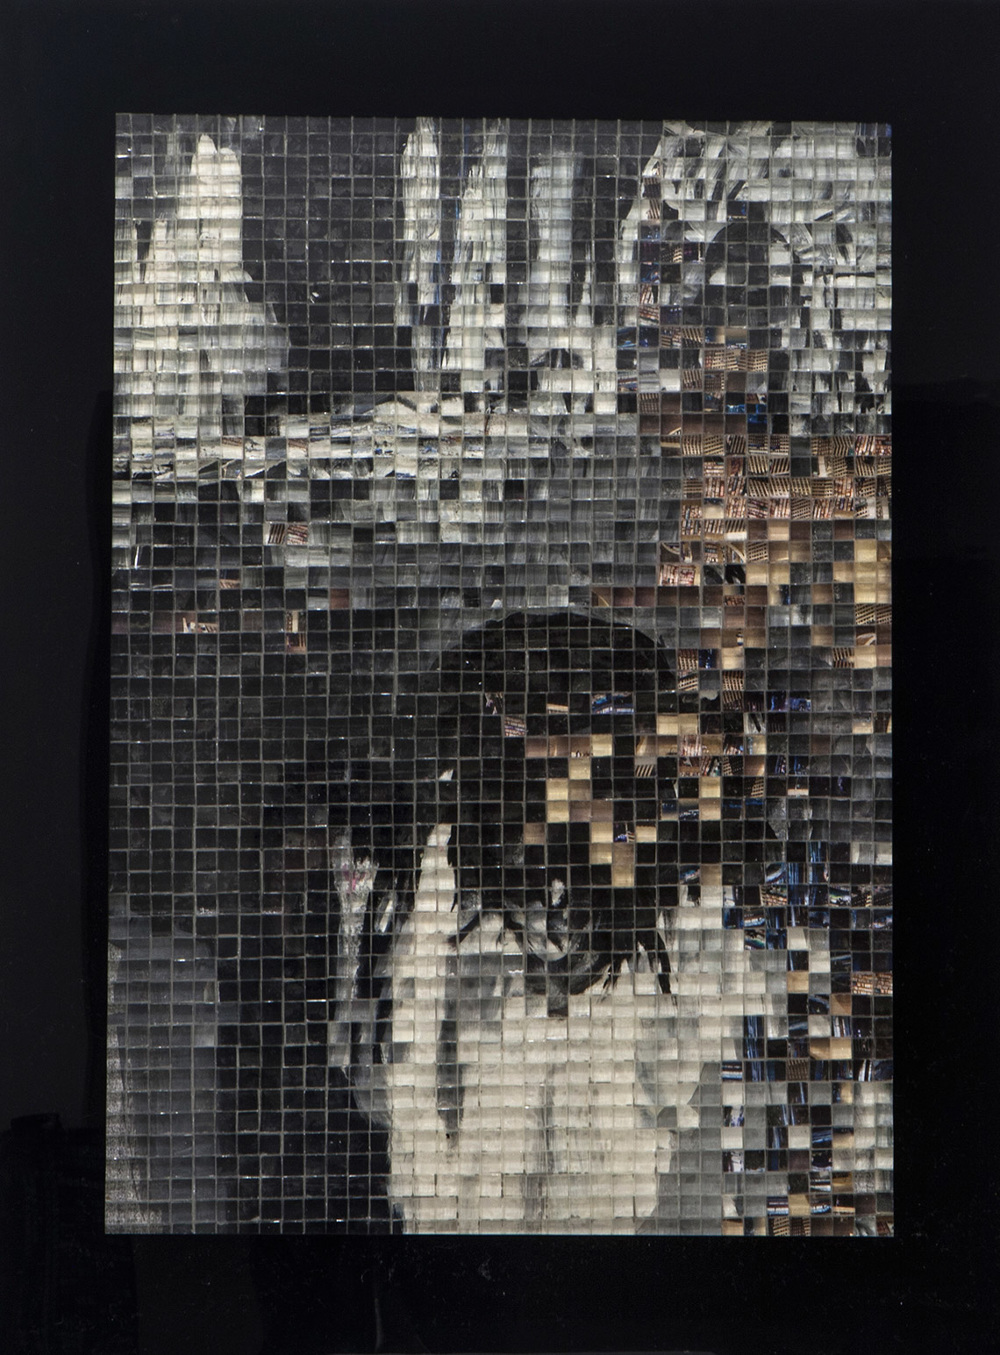 Concern, Mix Media On Plexiglass. 58 x 80 cm, 2014